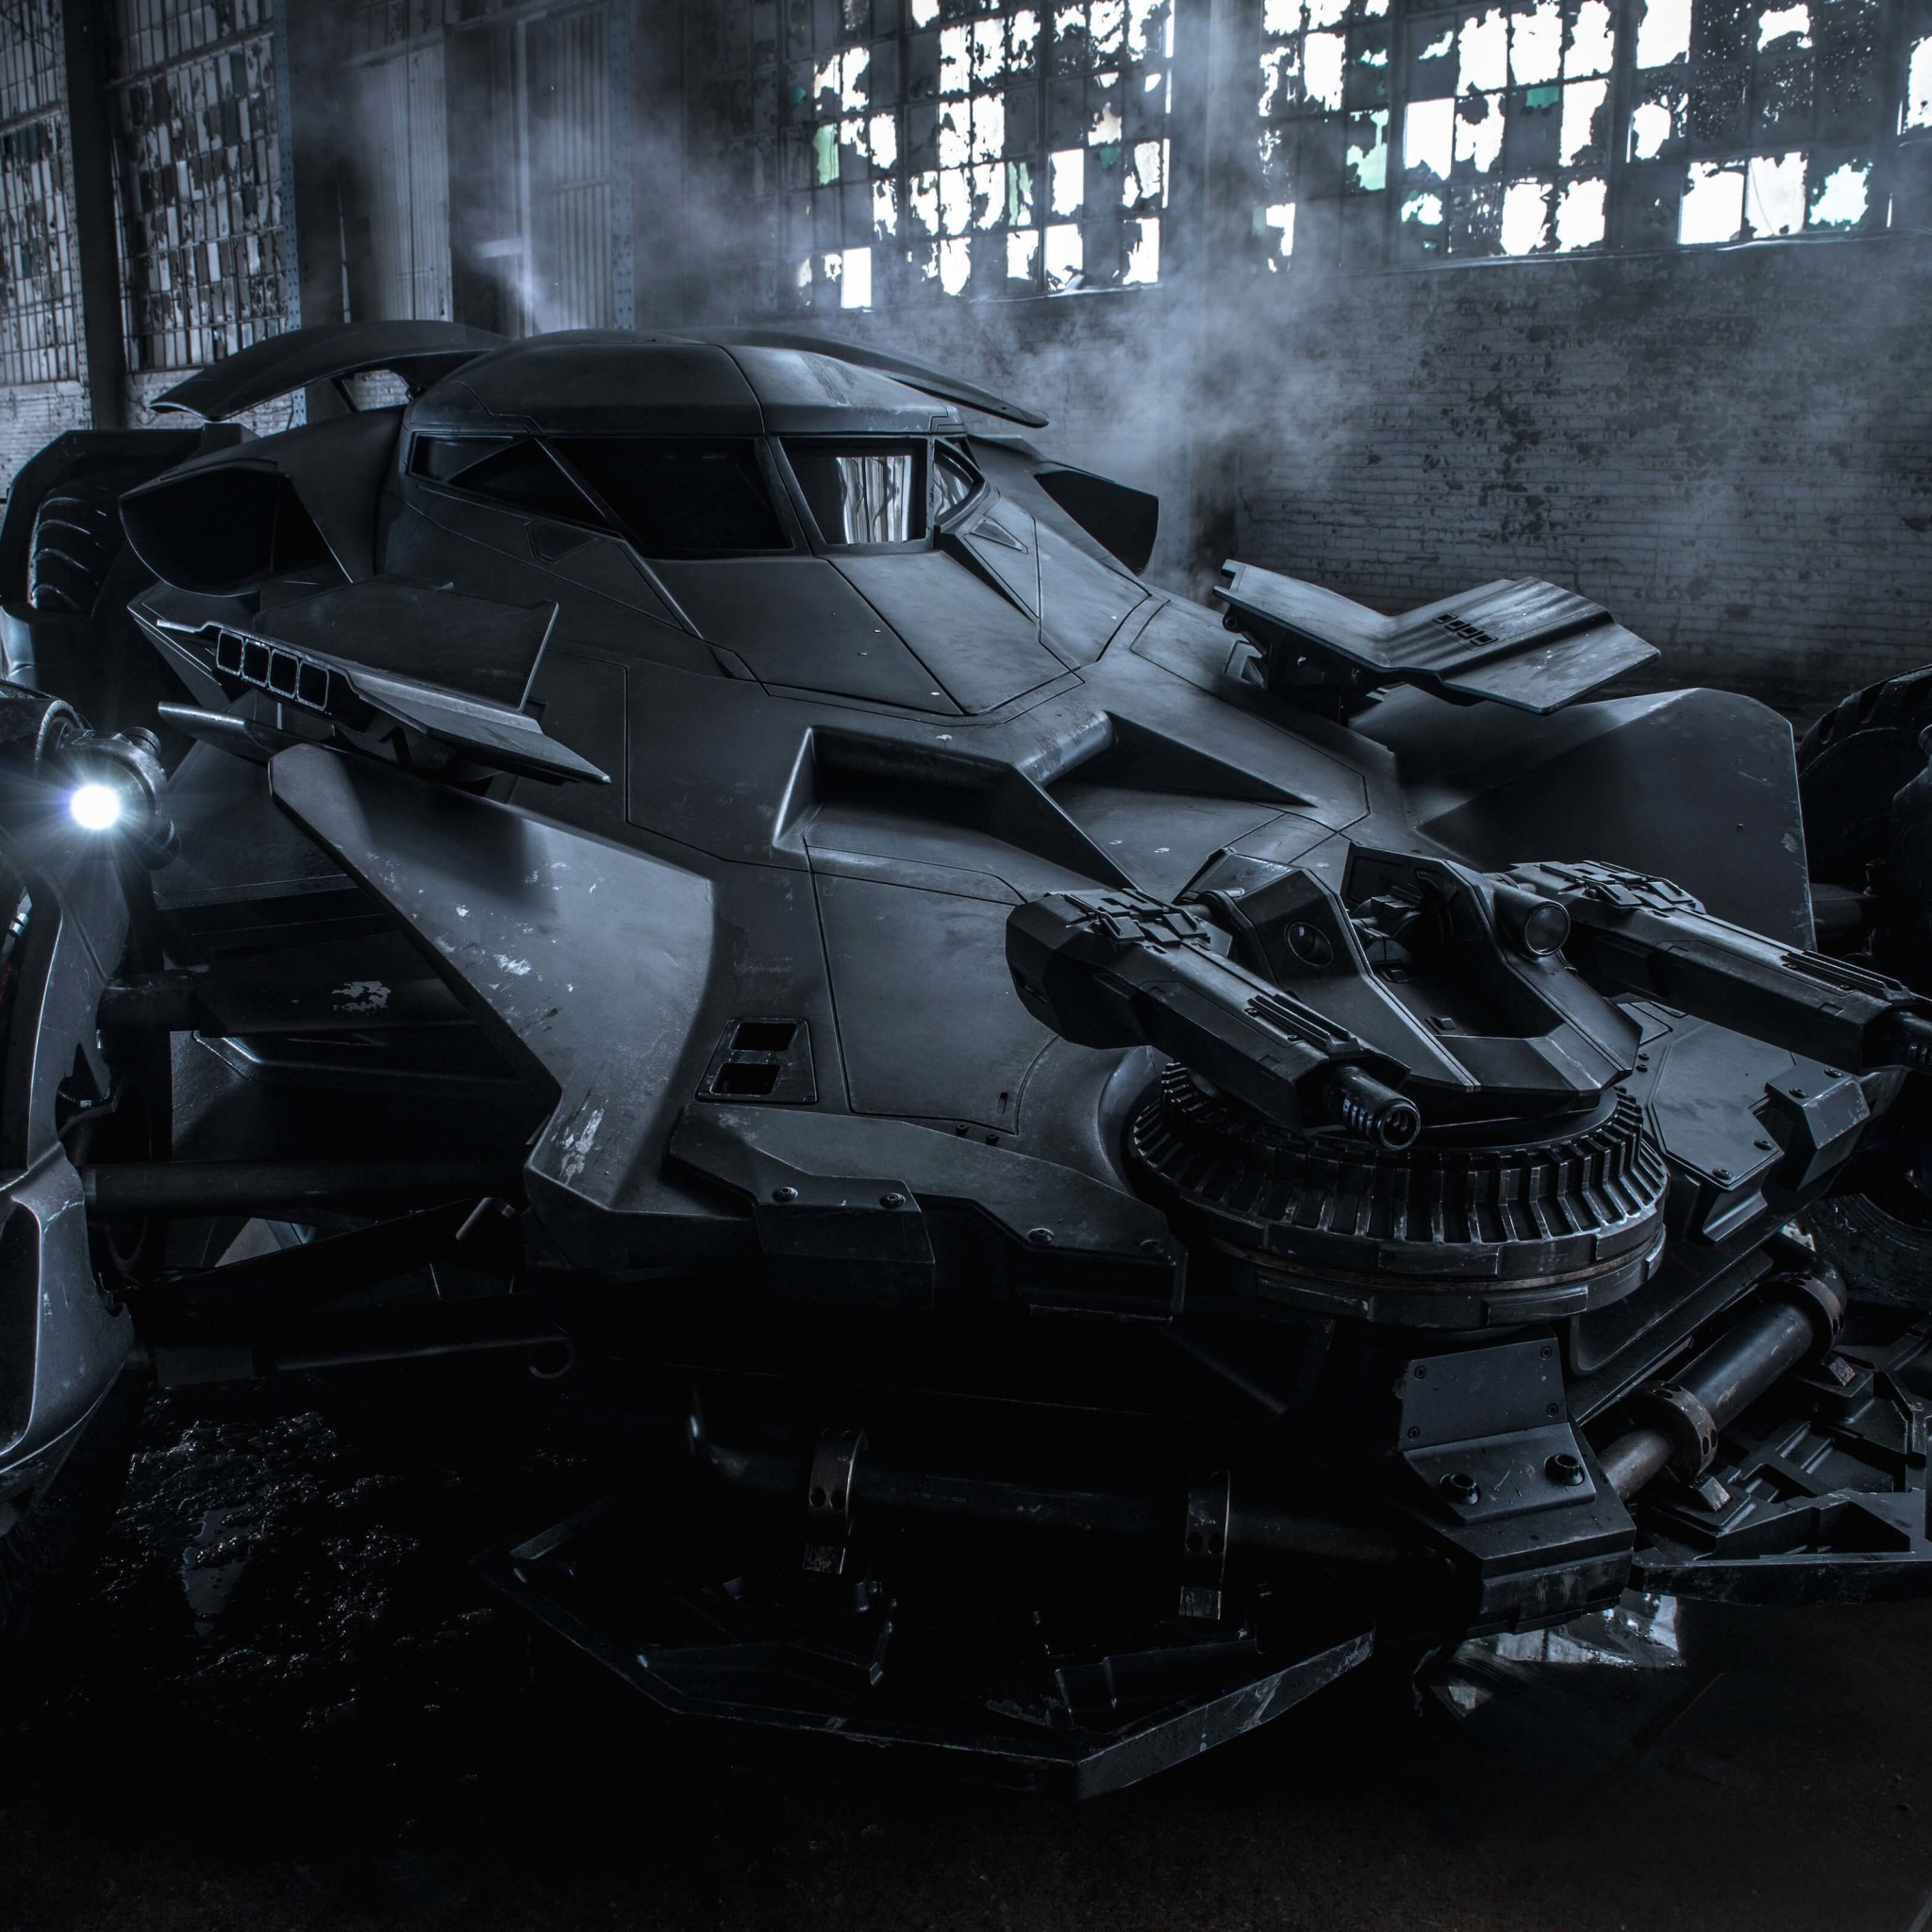 The Batman v Superman Batmobile Wallpaper for Google Nexus 9